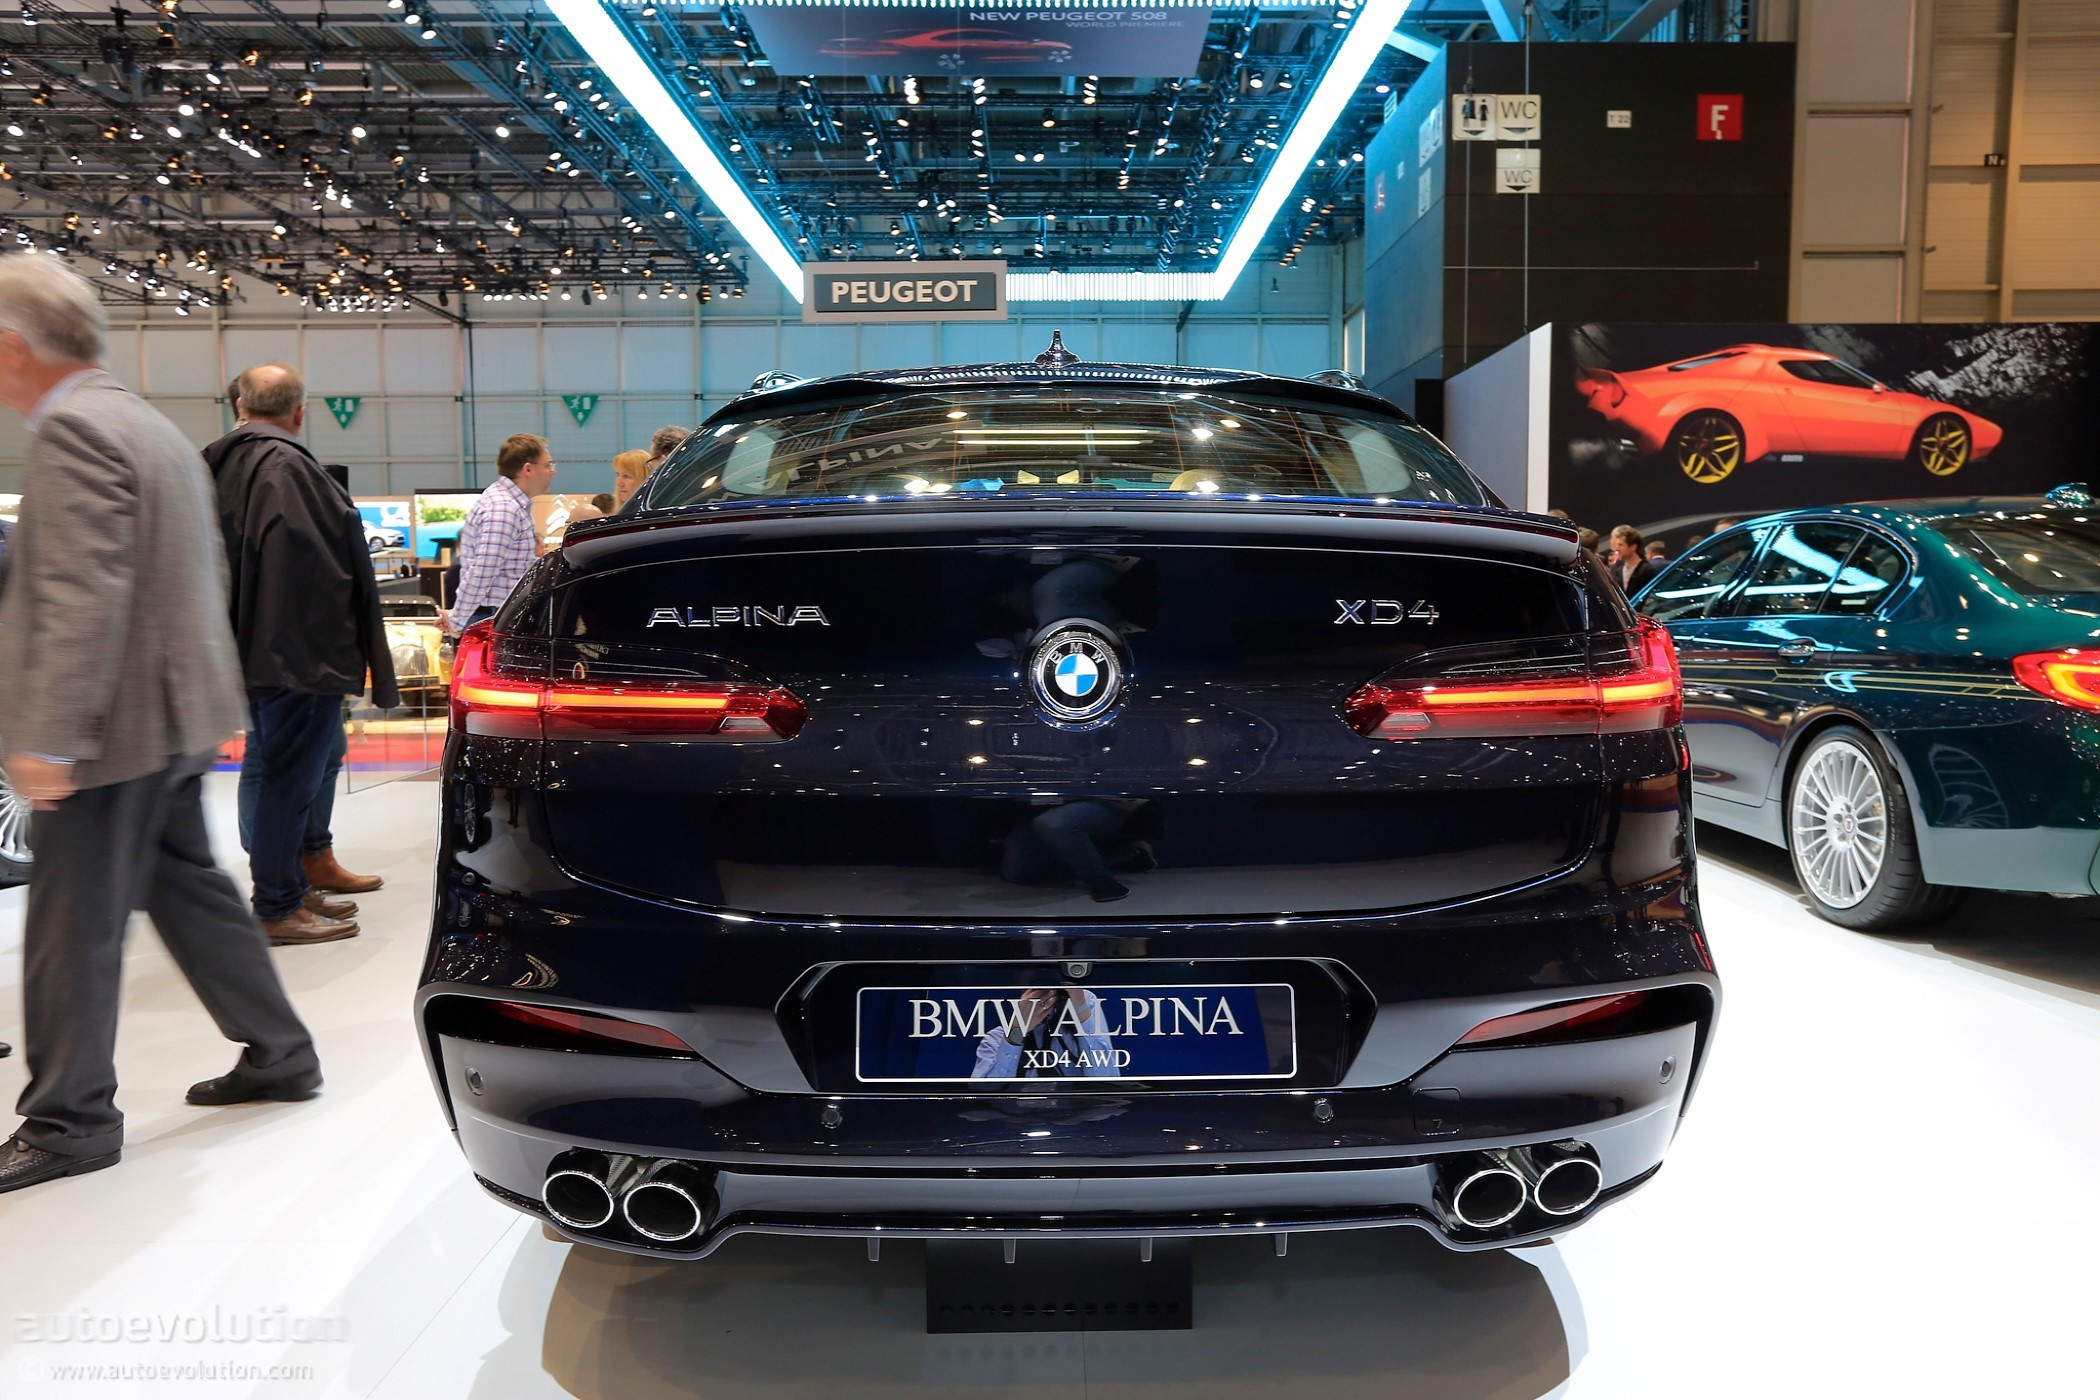 Alpina Brings Xd3 And Xd4 In Geneva Both Are Quad Turbocharged Autoevolution